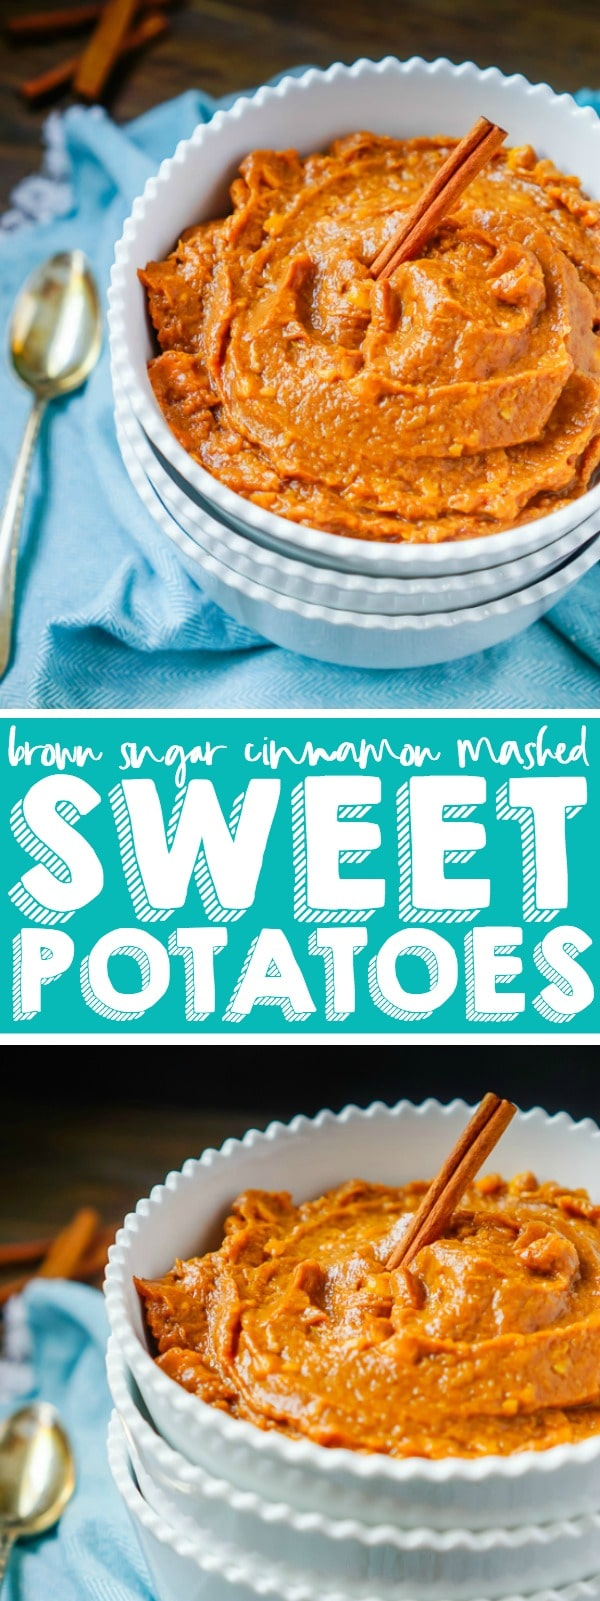 Cinnamon brown sugar mashed sweet potatoes are my favorite mashed potatoes recipe! This sweet potato side dish is the perfect addition for your holiday menu! Plus, they're easy, flavorful and easy to pair with main dishes all year long. | THE LOVE NERDS #THANKSGIVINGSIDEDISH #CHRISTMASSIDEDISH #HOLIDAYPOTATORECIPE #SWEETPOTATORECIPE